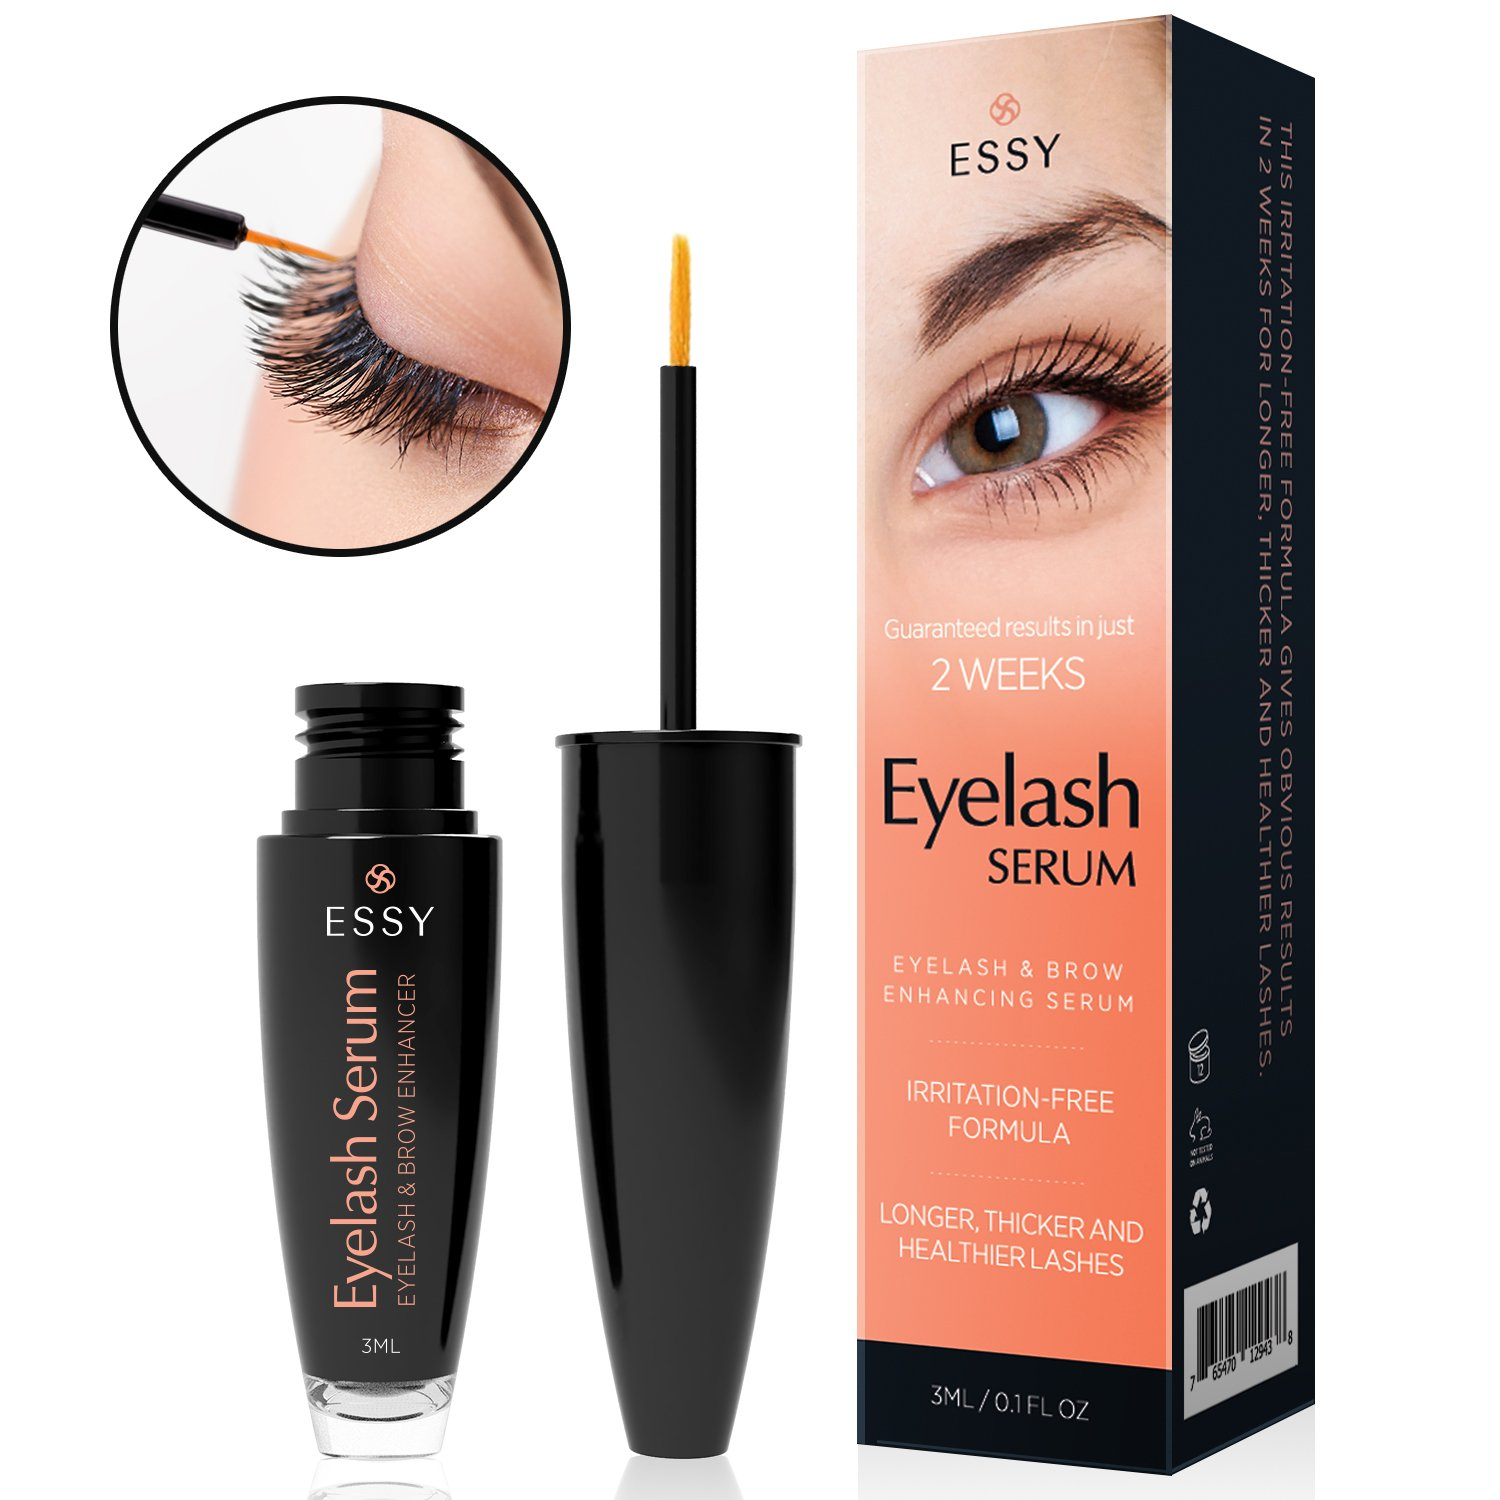 0e2d74190e1 Essy natural Eyelash Growth Enhancer & Brow Serum for Long, Luscious Lashes  and Eyebrows (3 ml): Amazon.co.uk: Beauty